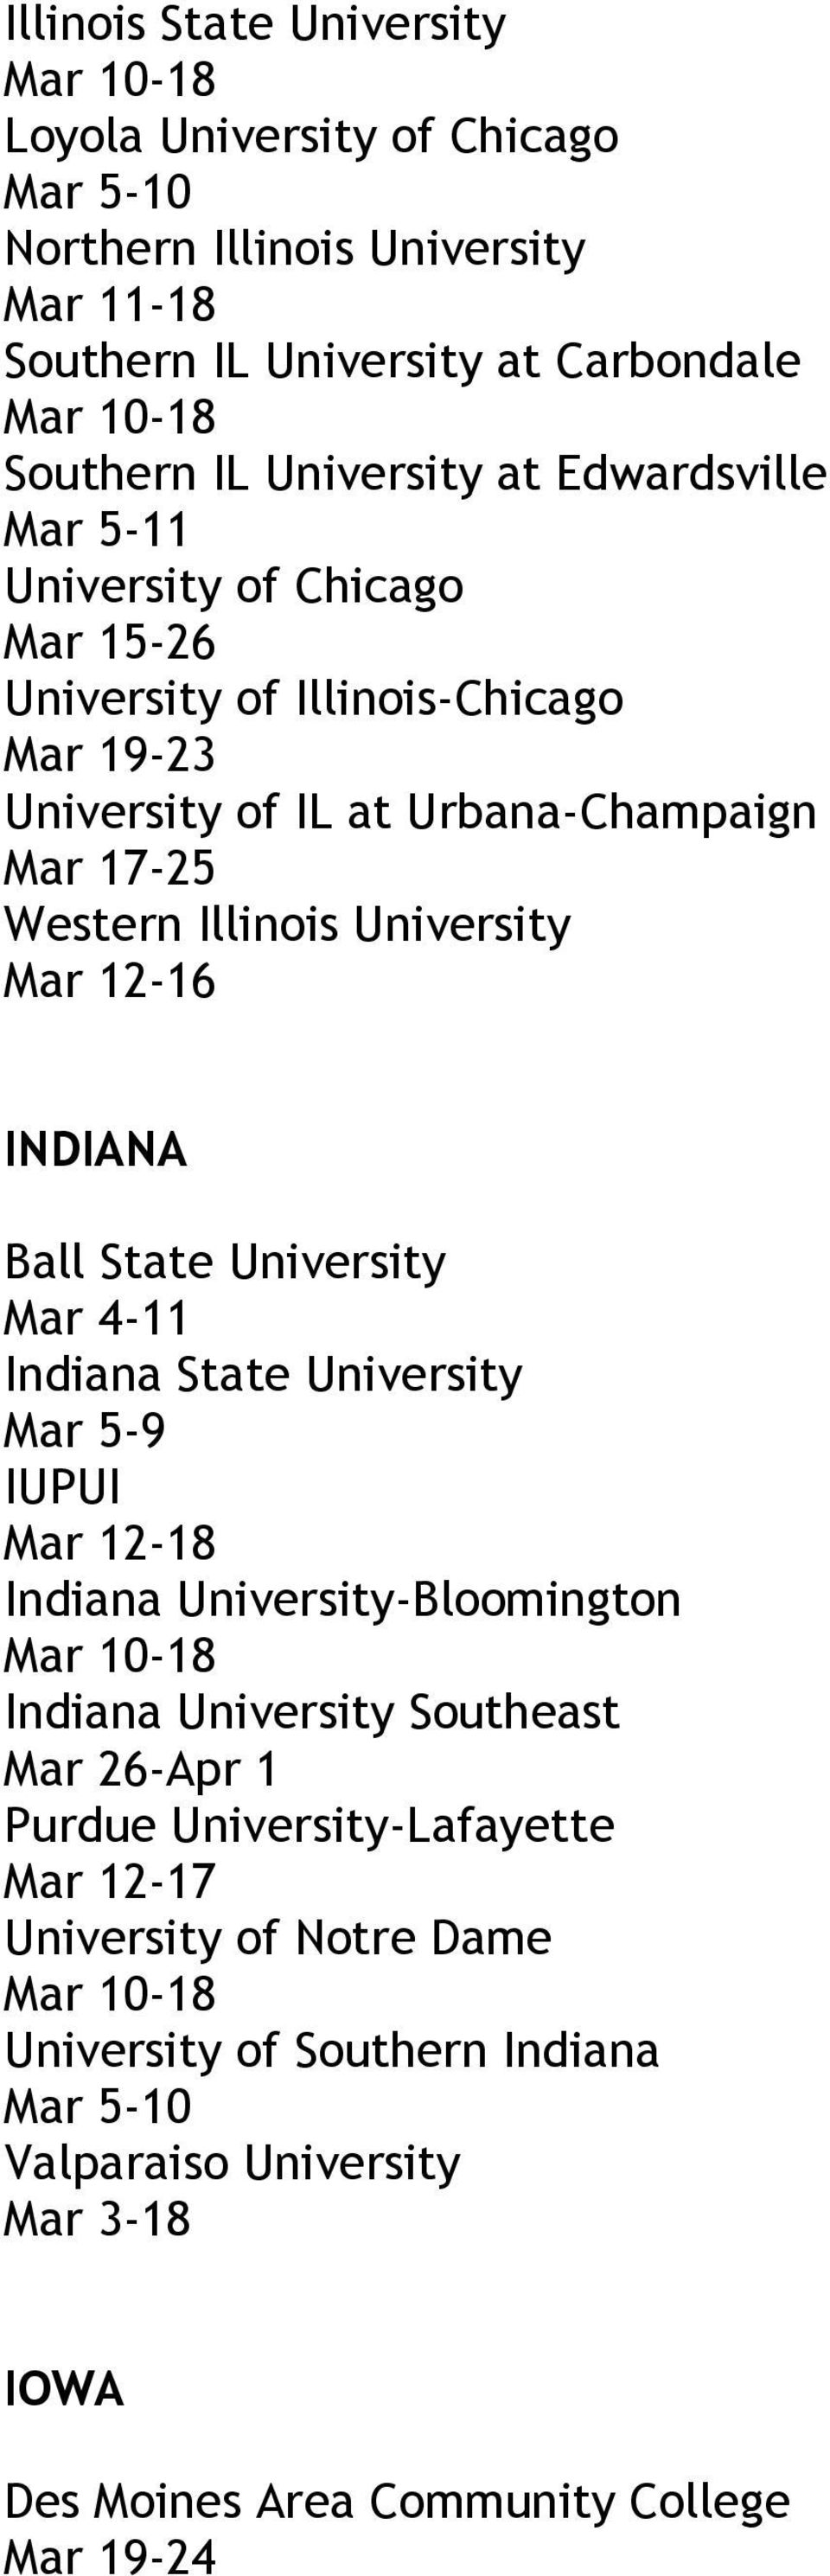 INDIANA Ball State University Mar 4-11 Indiana State University IUPUI Indiana University-Bloomington Indiana University Southeast Mar 26-Apr 1 Purdue